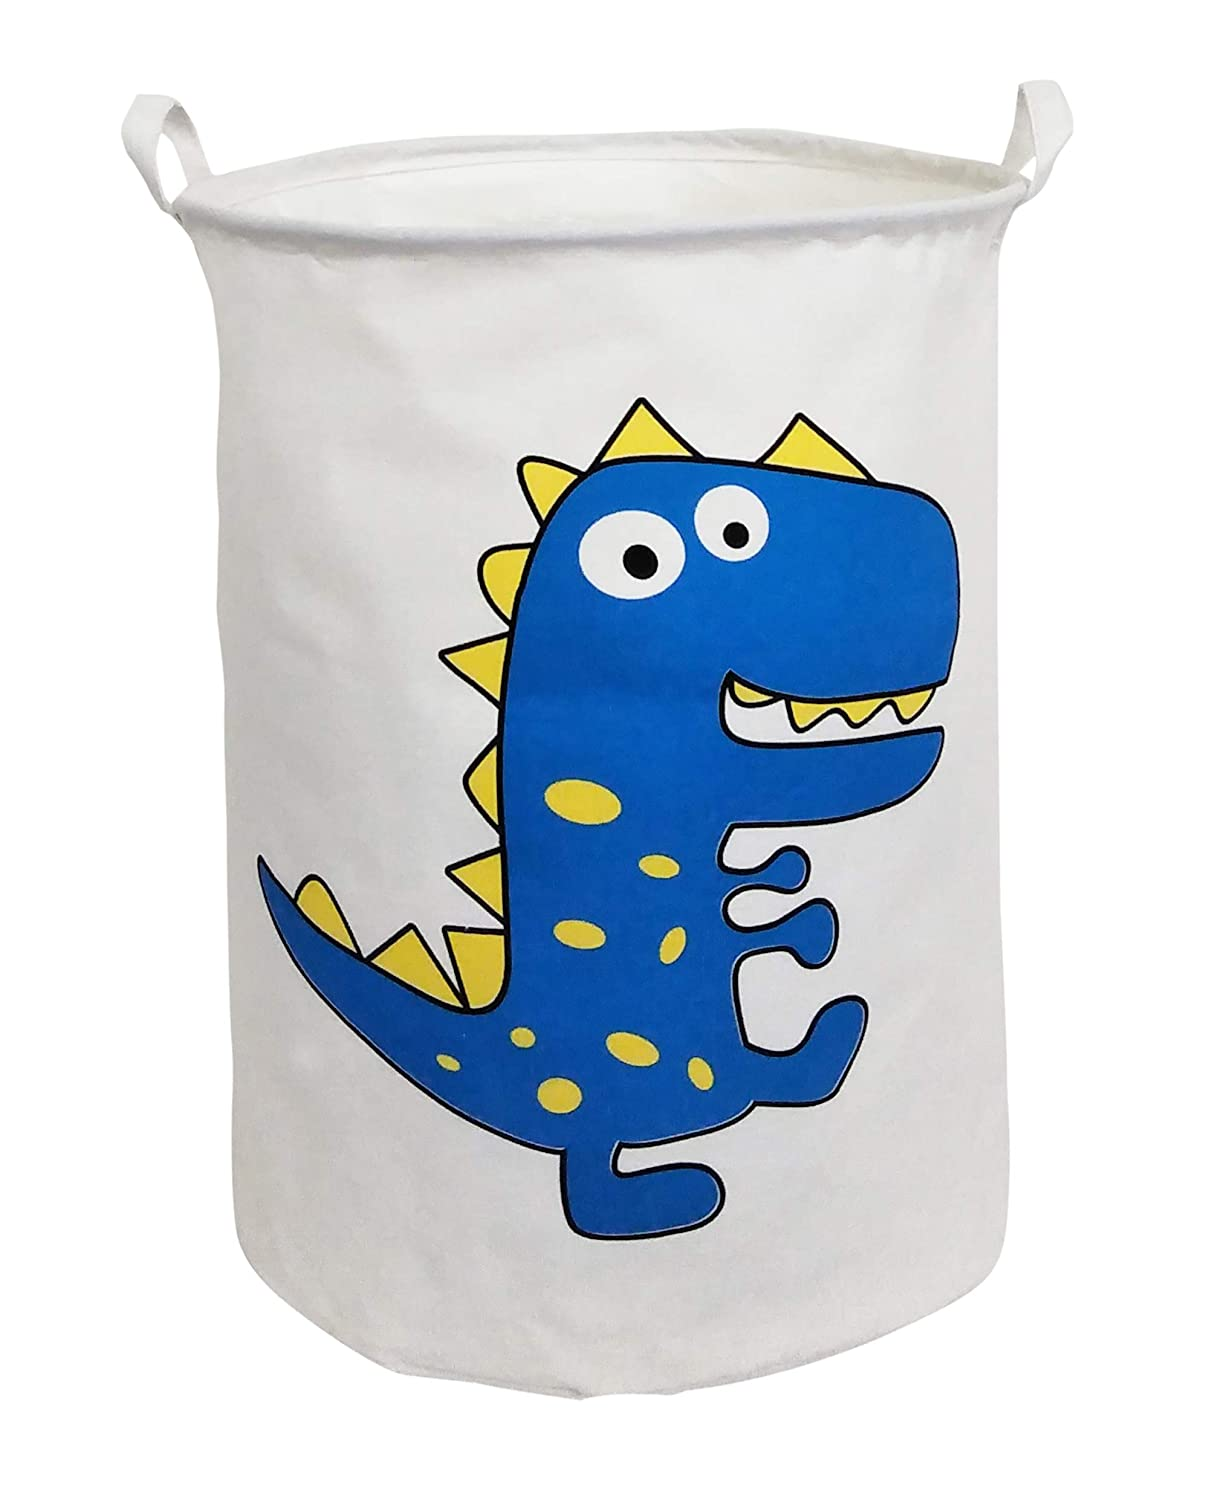 bd9bcd1bf758 CLOCOR Large Storage Bin-Cotton Storage Basket-Round Gift Basket with  Handles for Toys,Laundry,Baby Nursery (Blue Dinosaur)